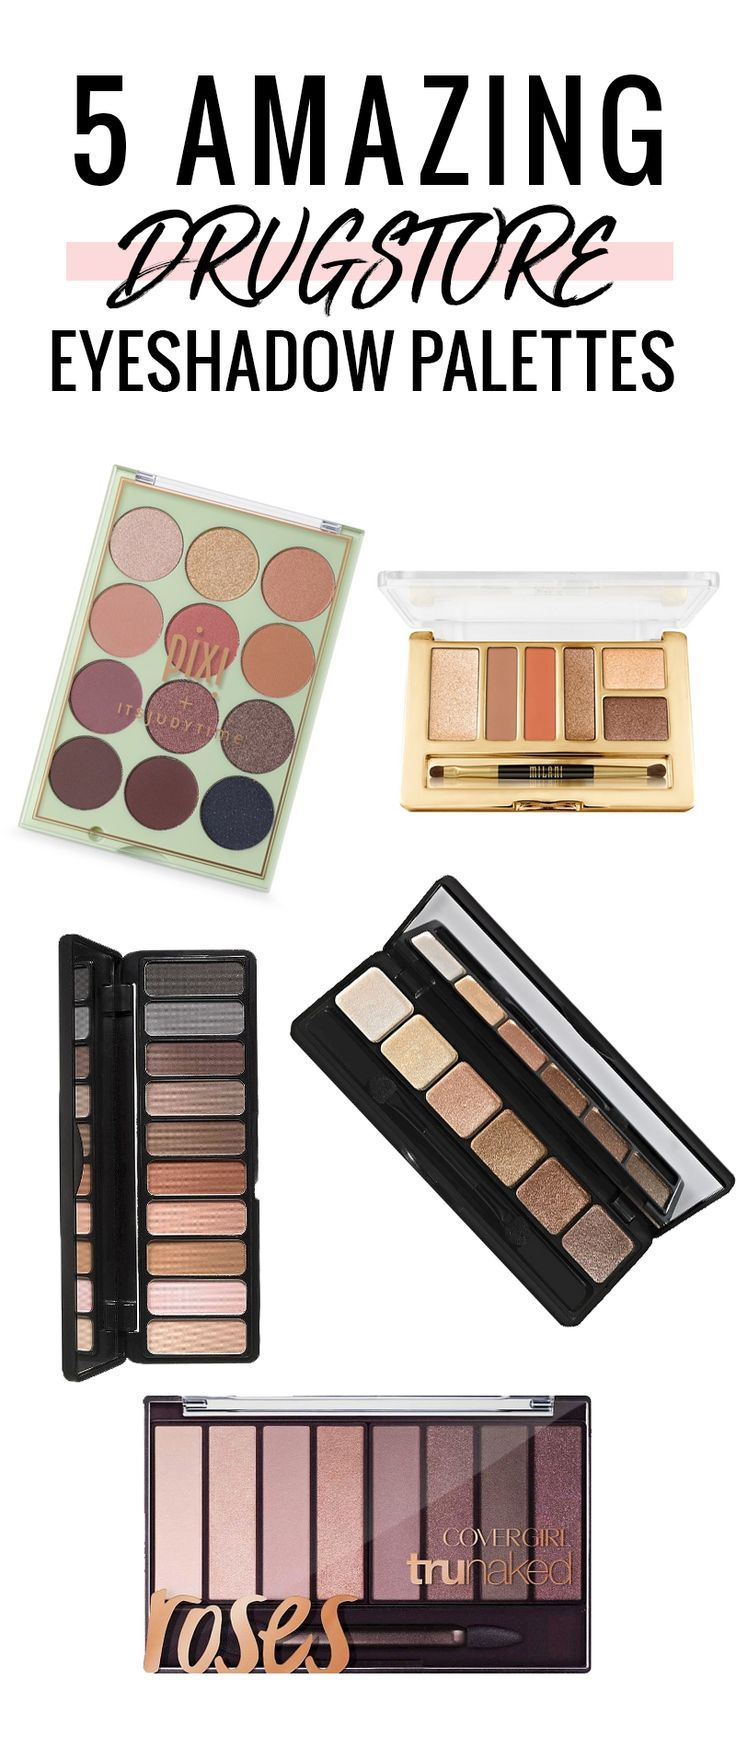 5 Amazing Drugstore Eyeshadow Palettes | BEAUTY - Makeup ...